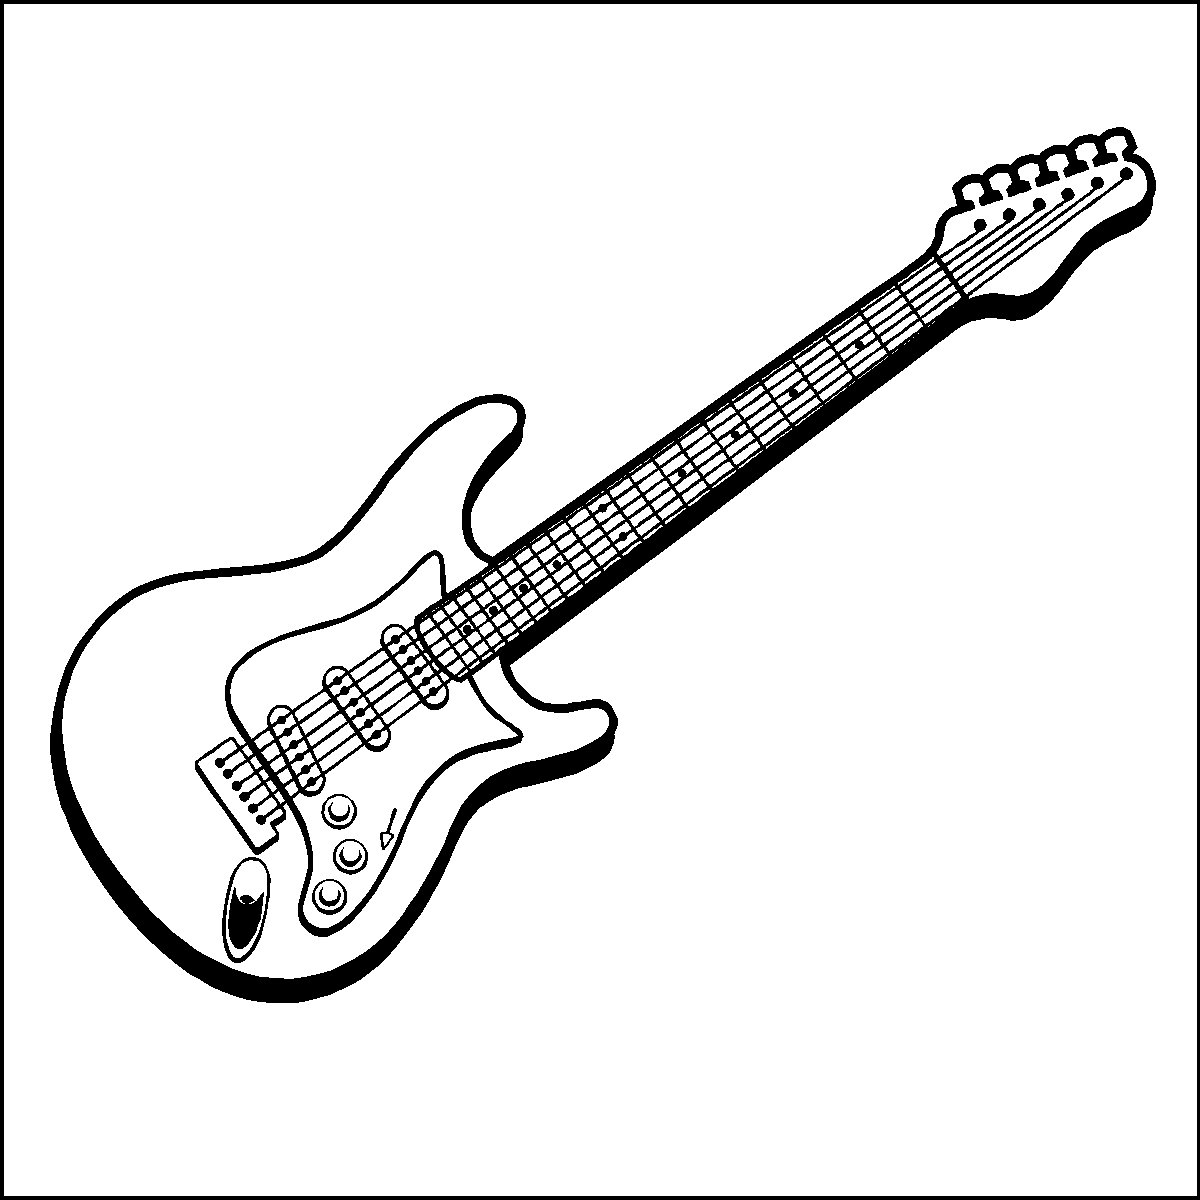 eletric guitar coloring pages - photo#7